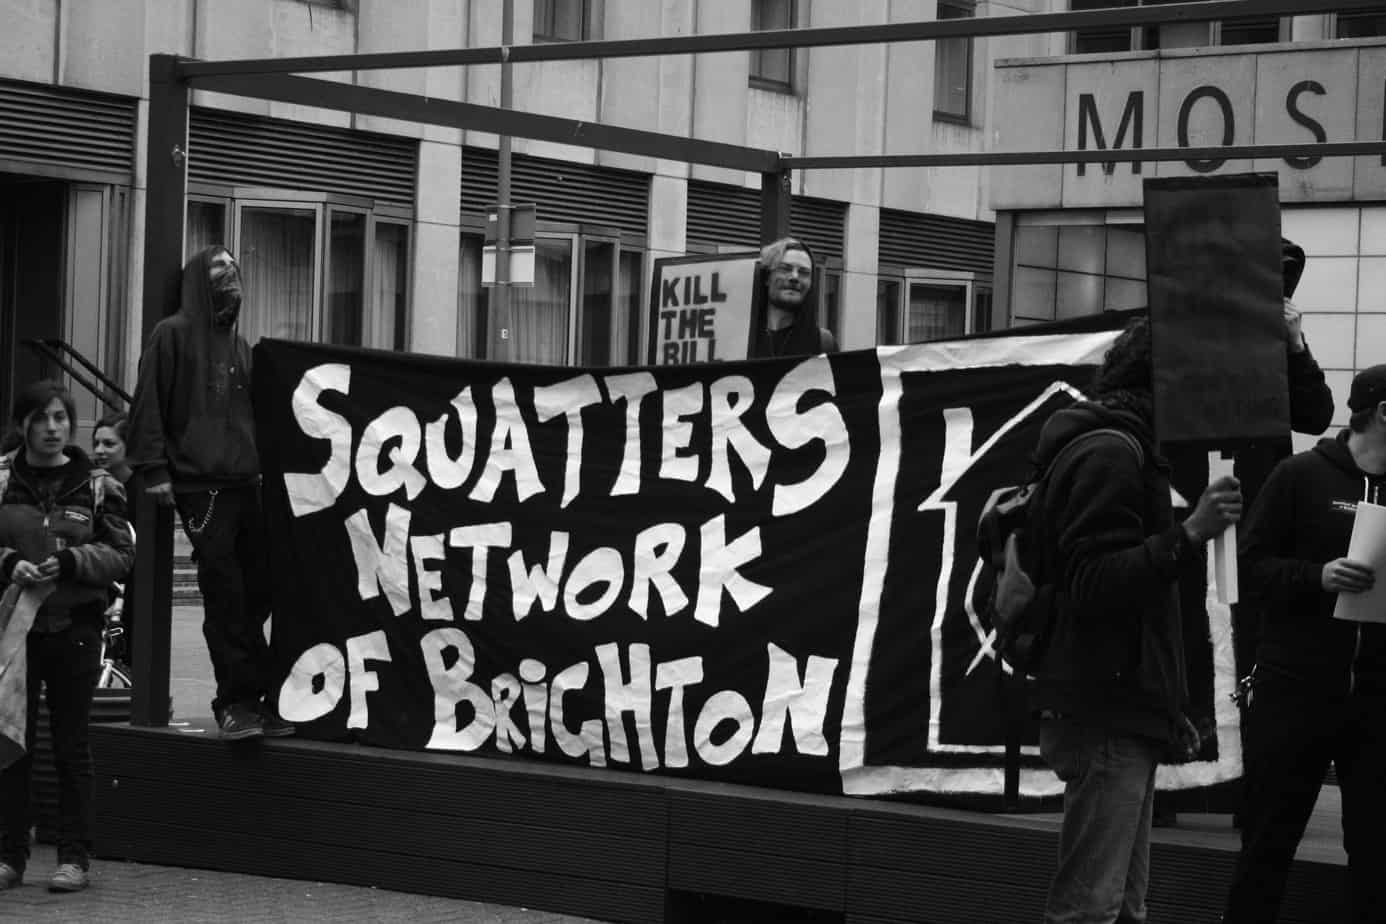 squatters-network-of-brighton